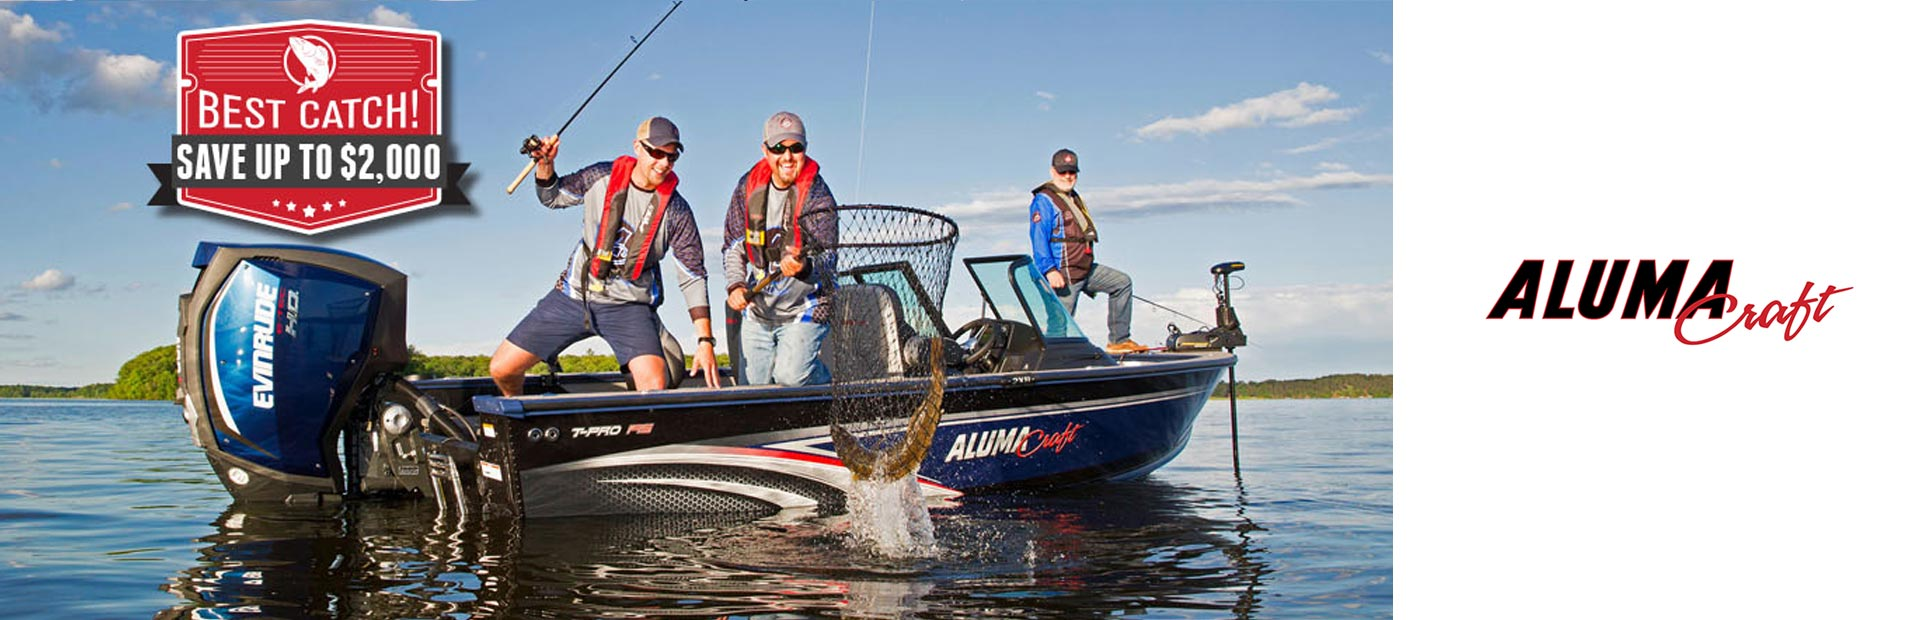 Alumacraft: Best Catch! Save Up To $2,000